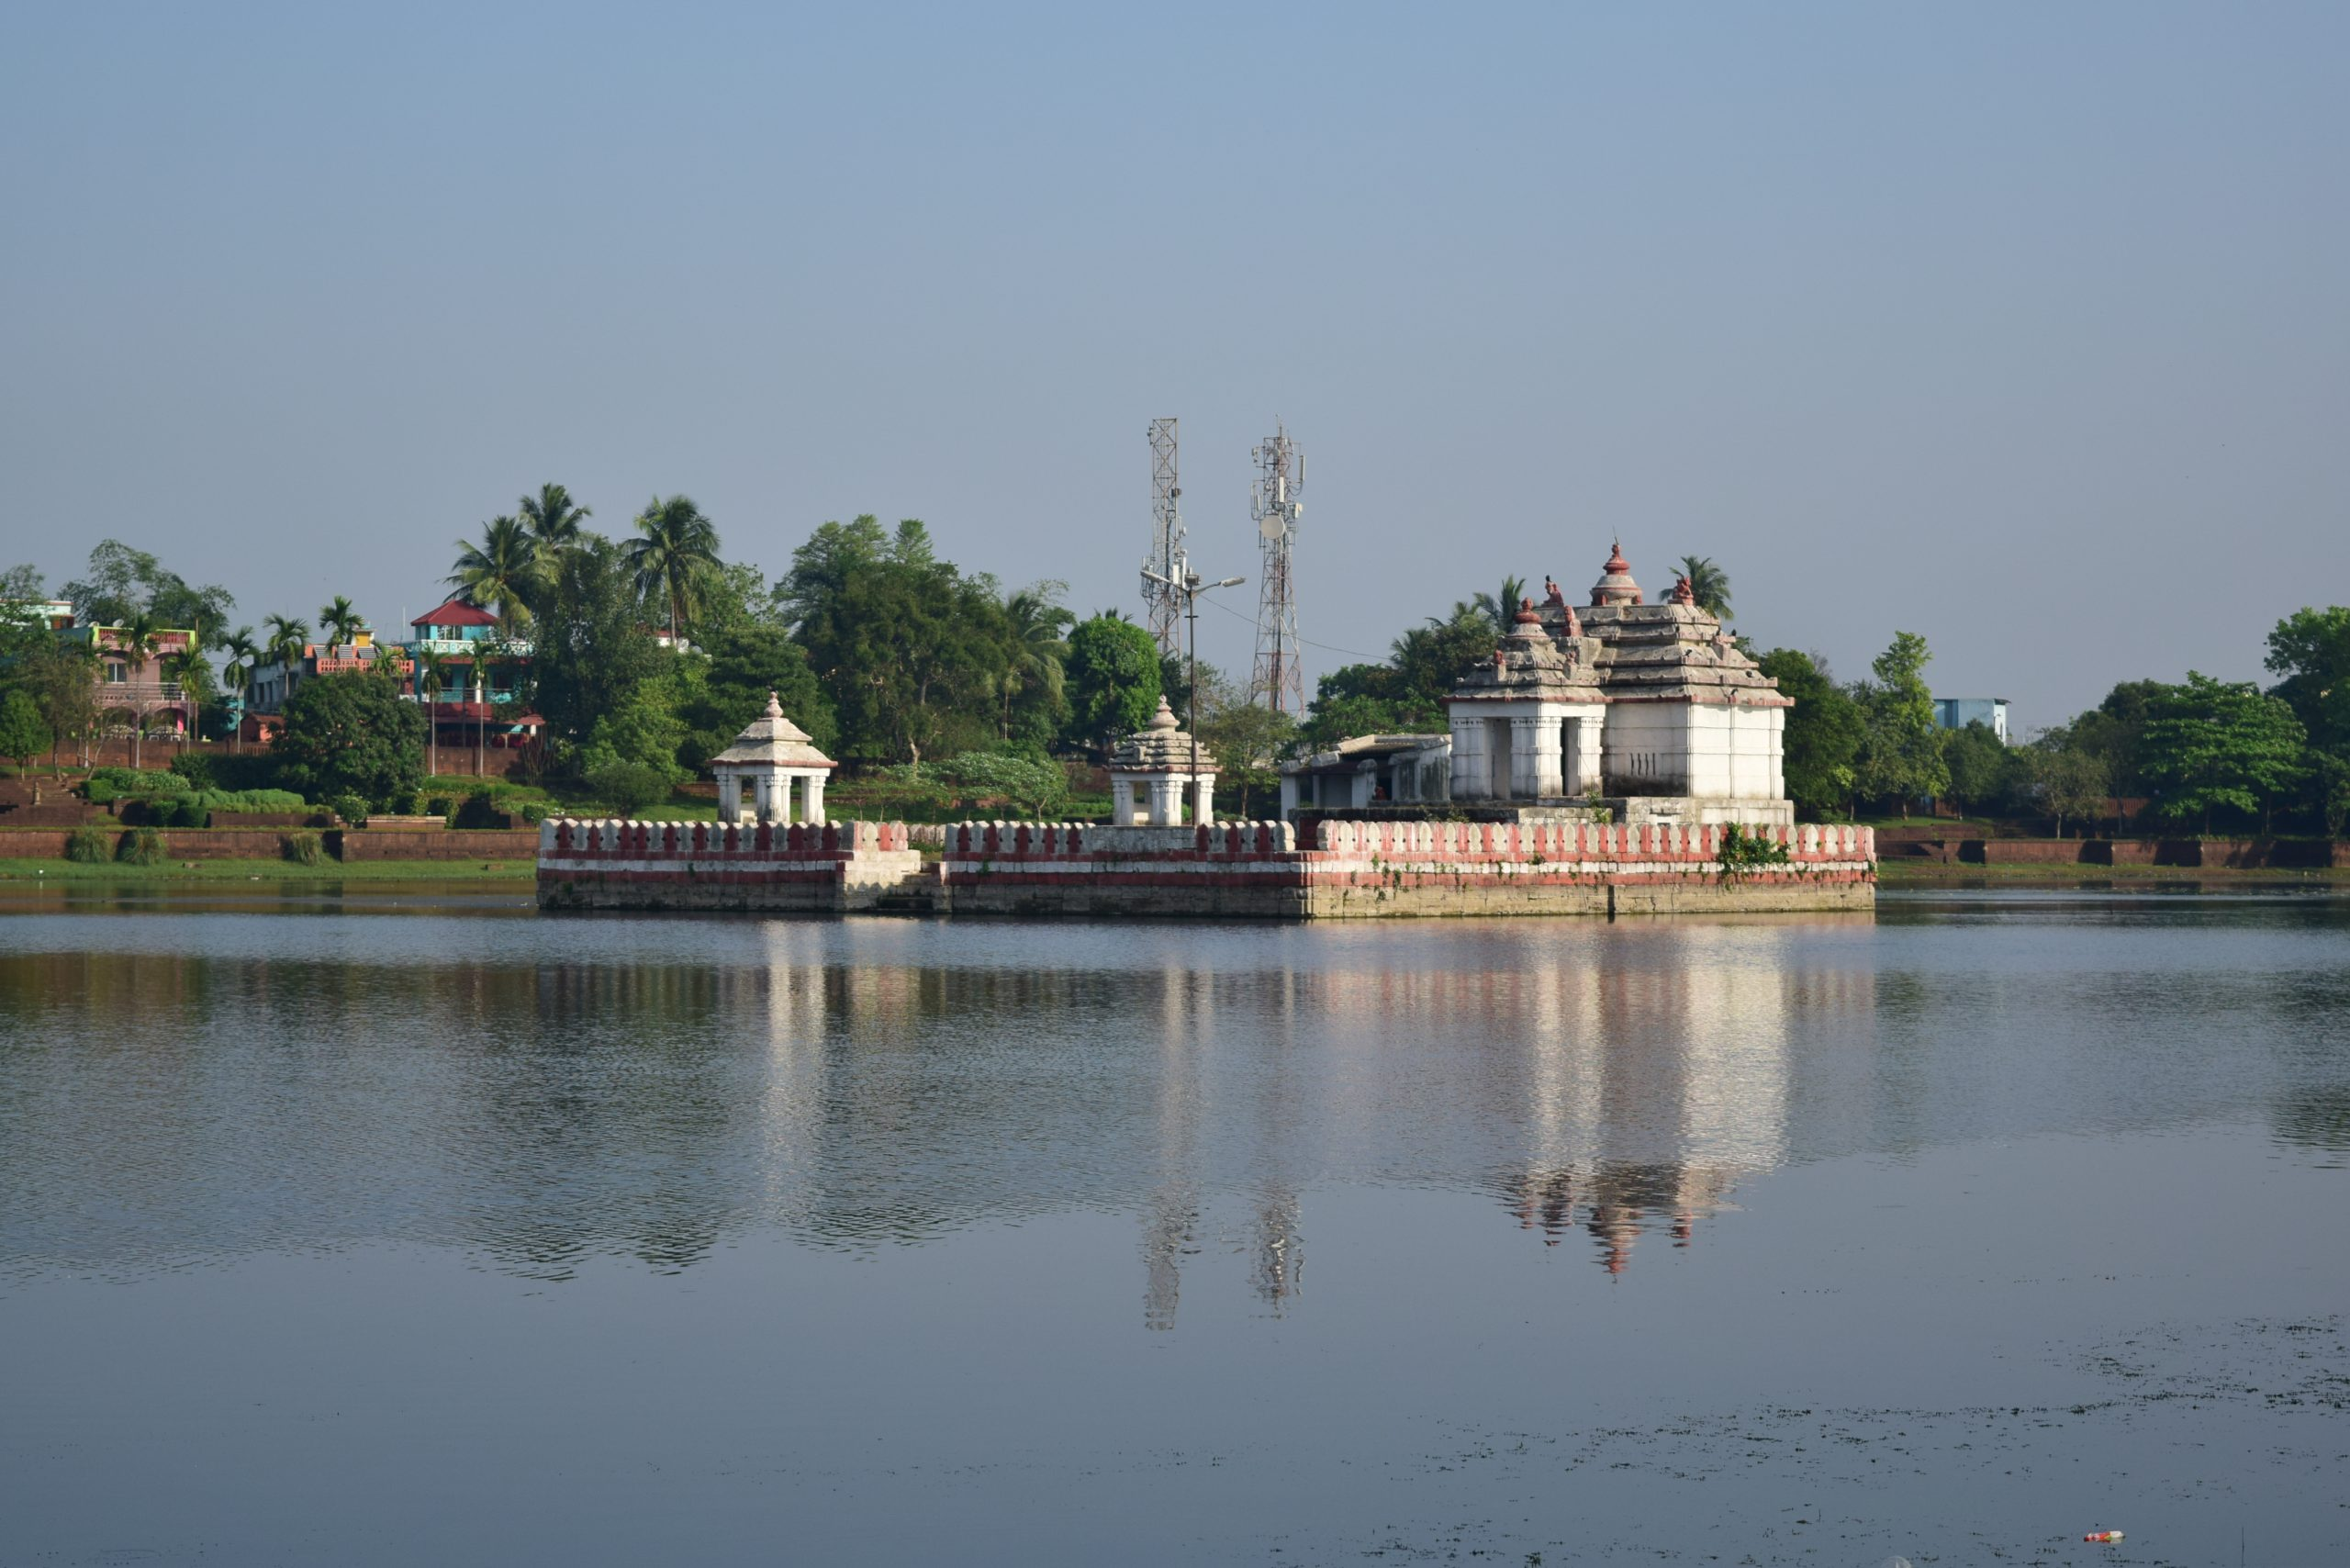 Most Popular Place To Visit In Bhubaneswar - Bindu Sagar Lake/Bindu Sarovar